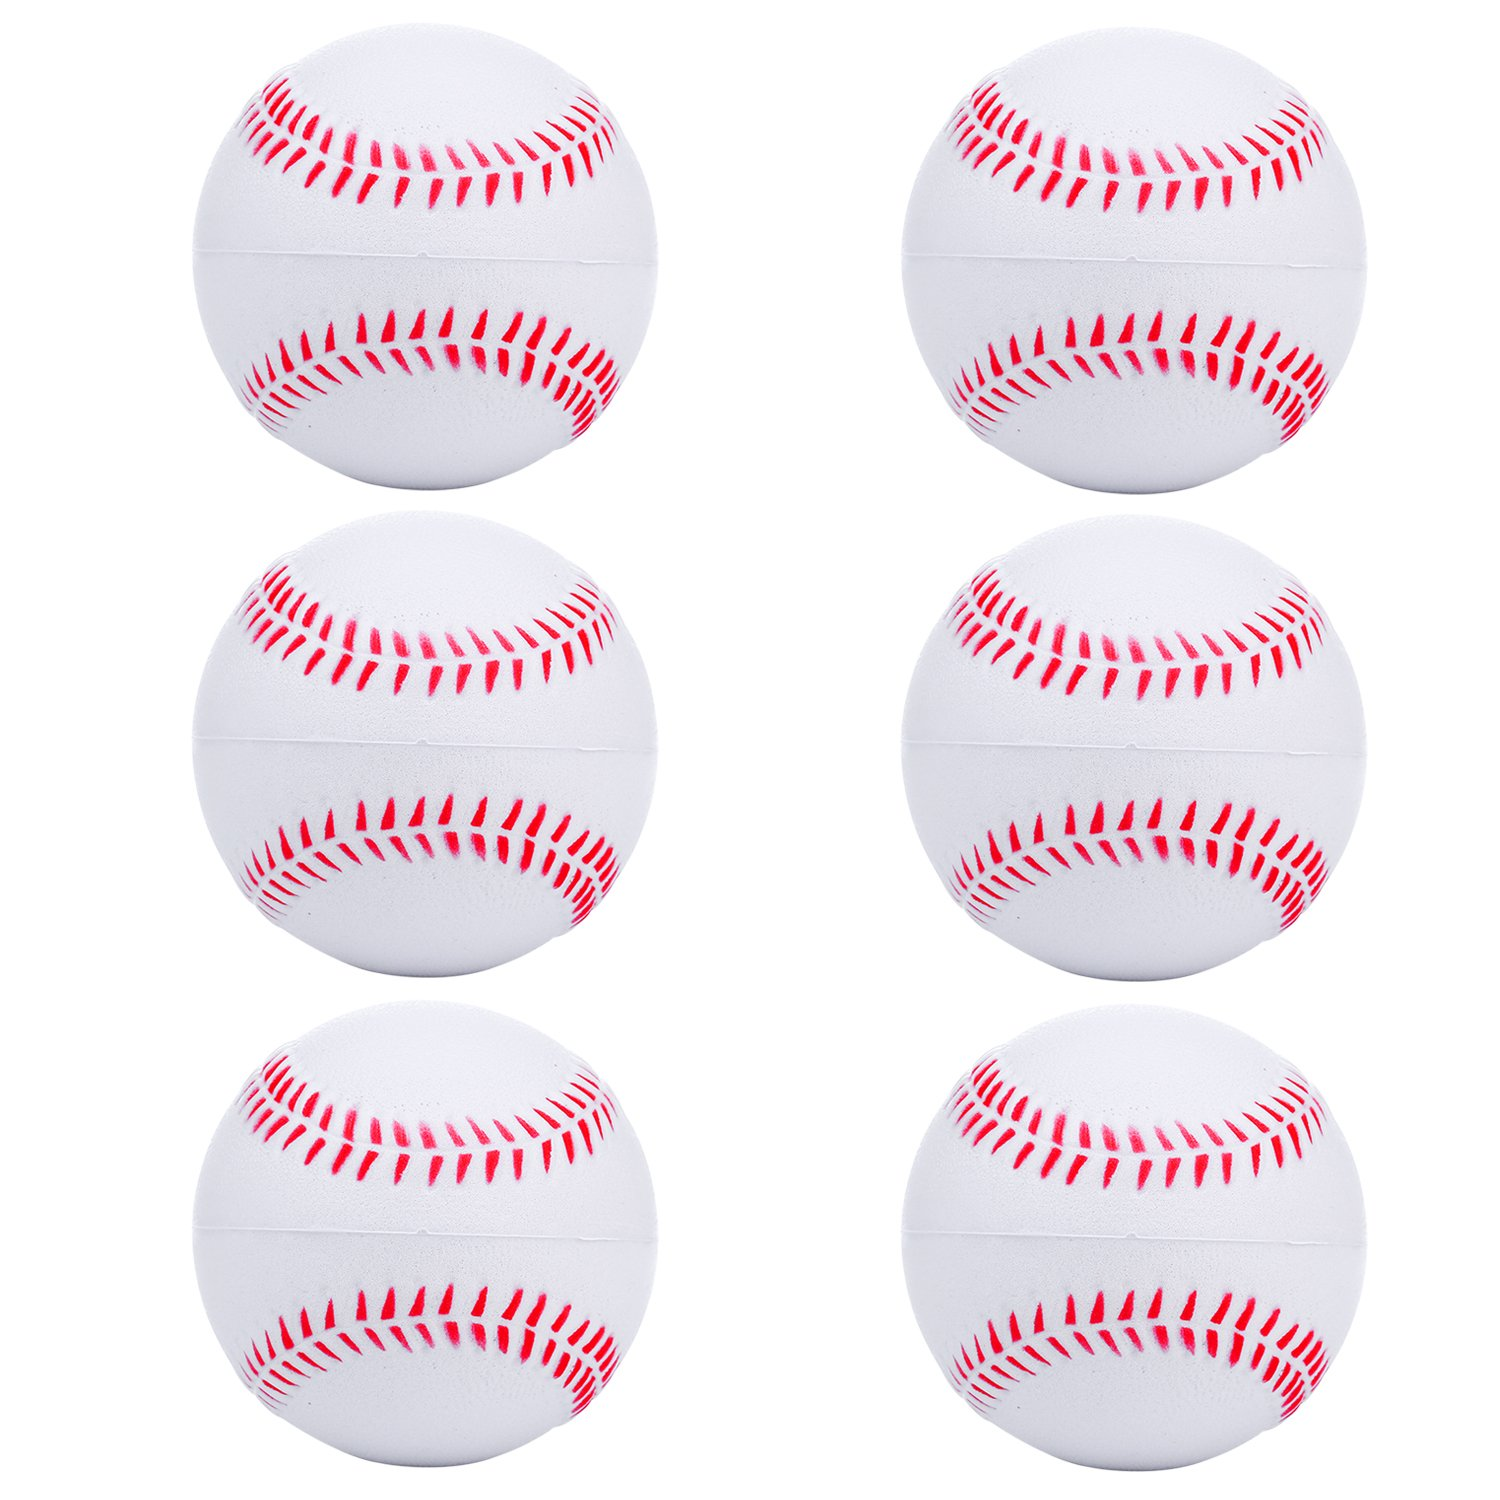 niceEshop(TM) 2pcs Foam Baseball Balls Reduced Impact Safety Softball for Children Teenager Players